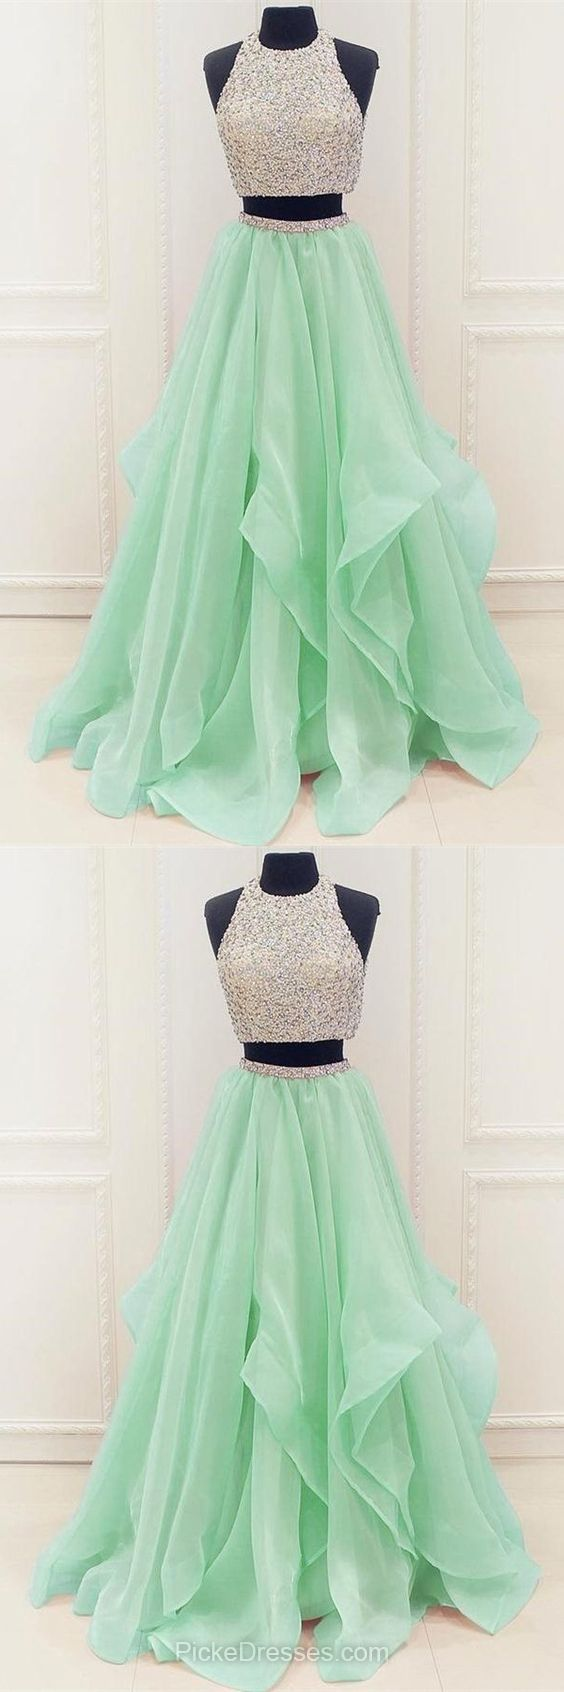 Two Piece Prom Dresses Green, Princess Party Dresses Modest, Scoop Neck Organza Long Formal Dresses Beading Fabulous